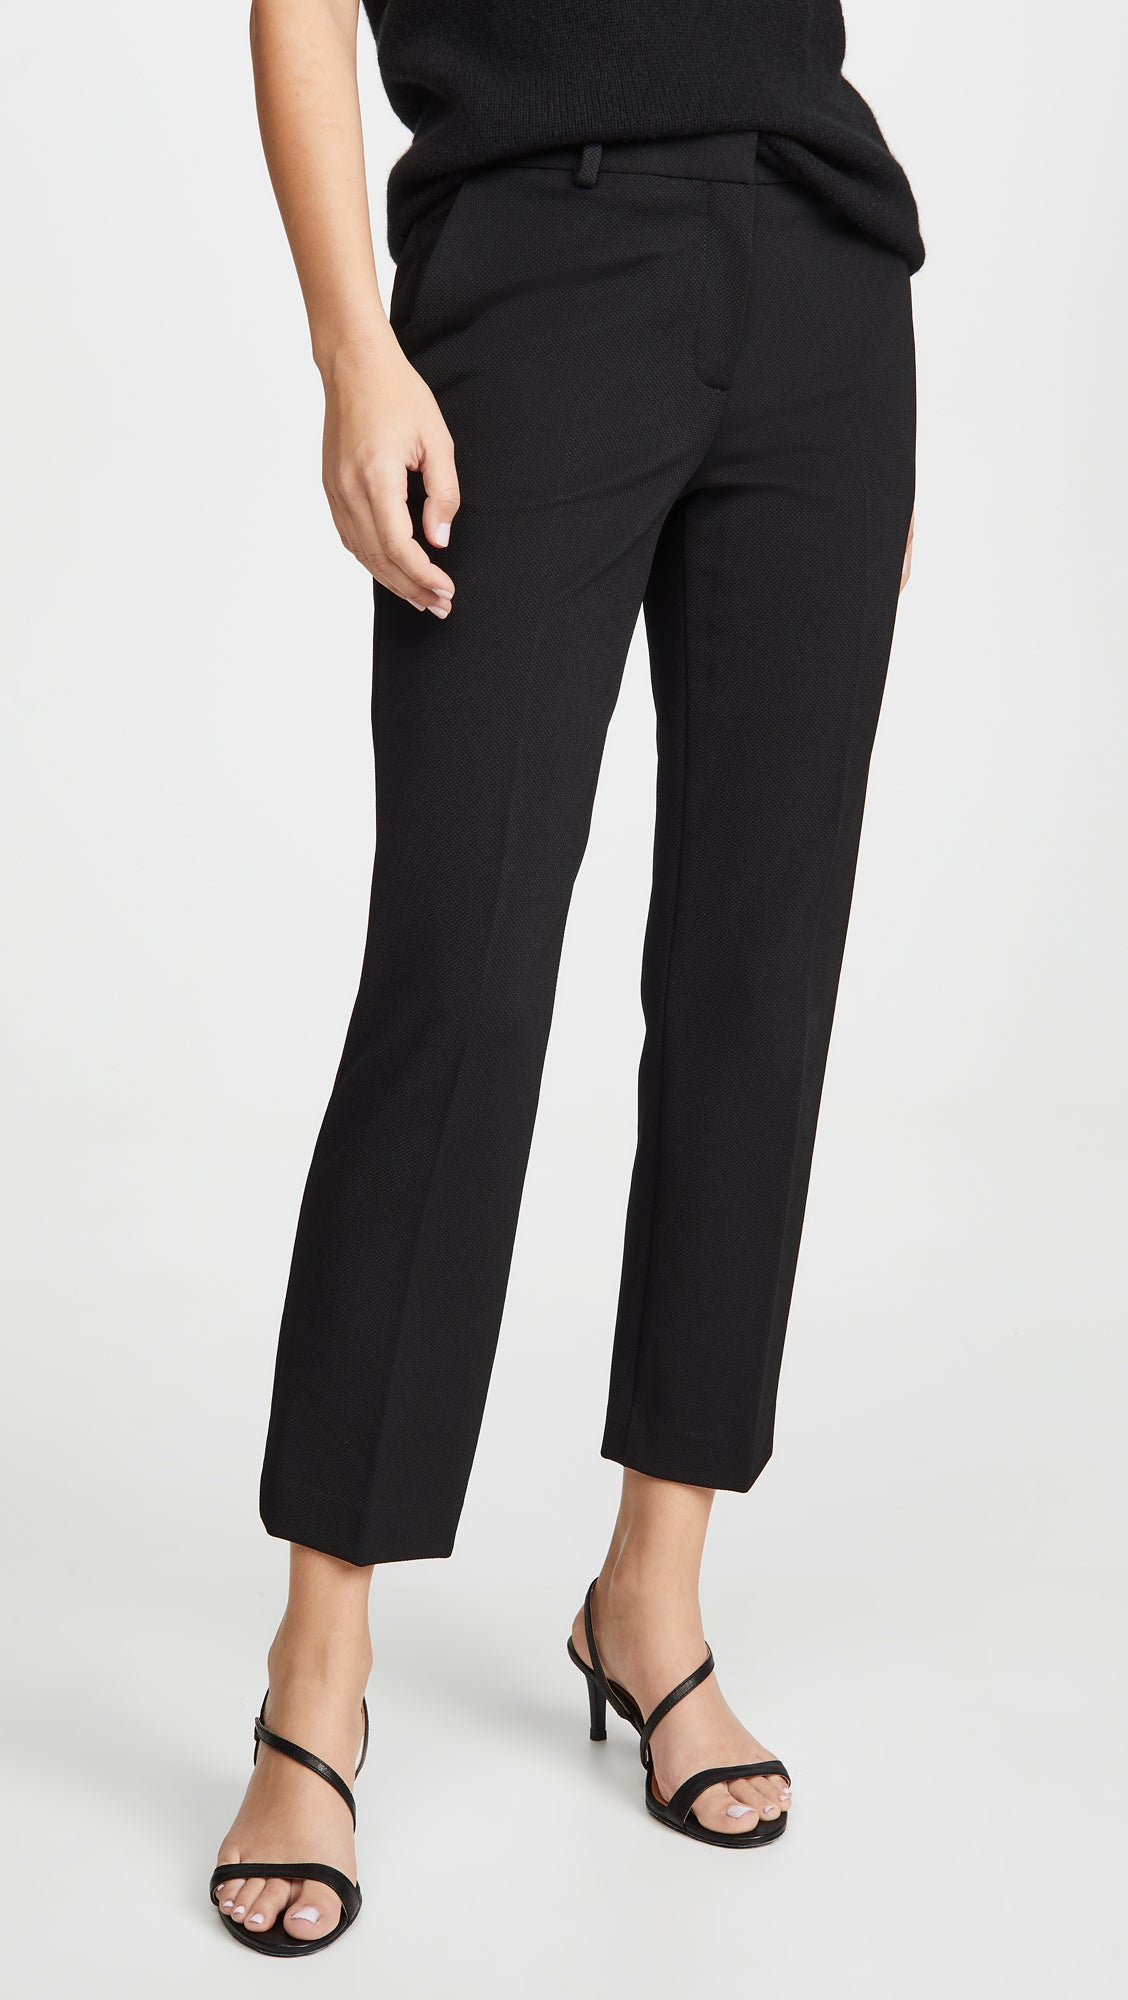 Theory - Classic black trousers pants